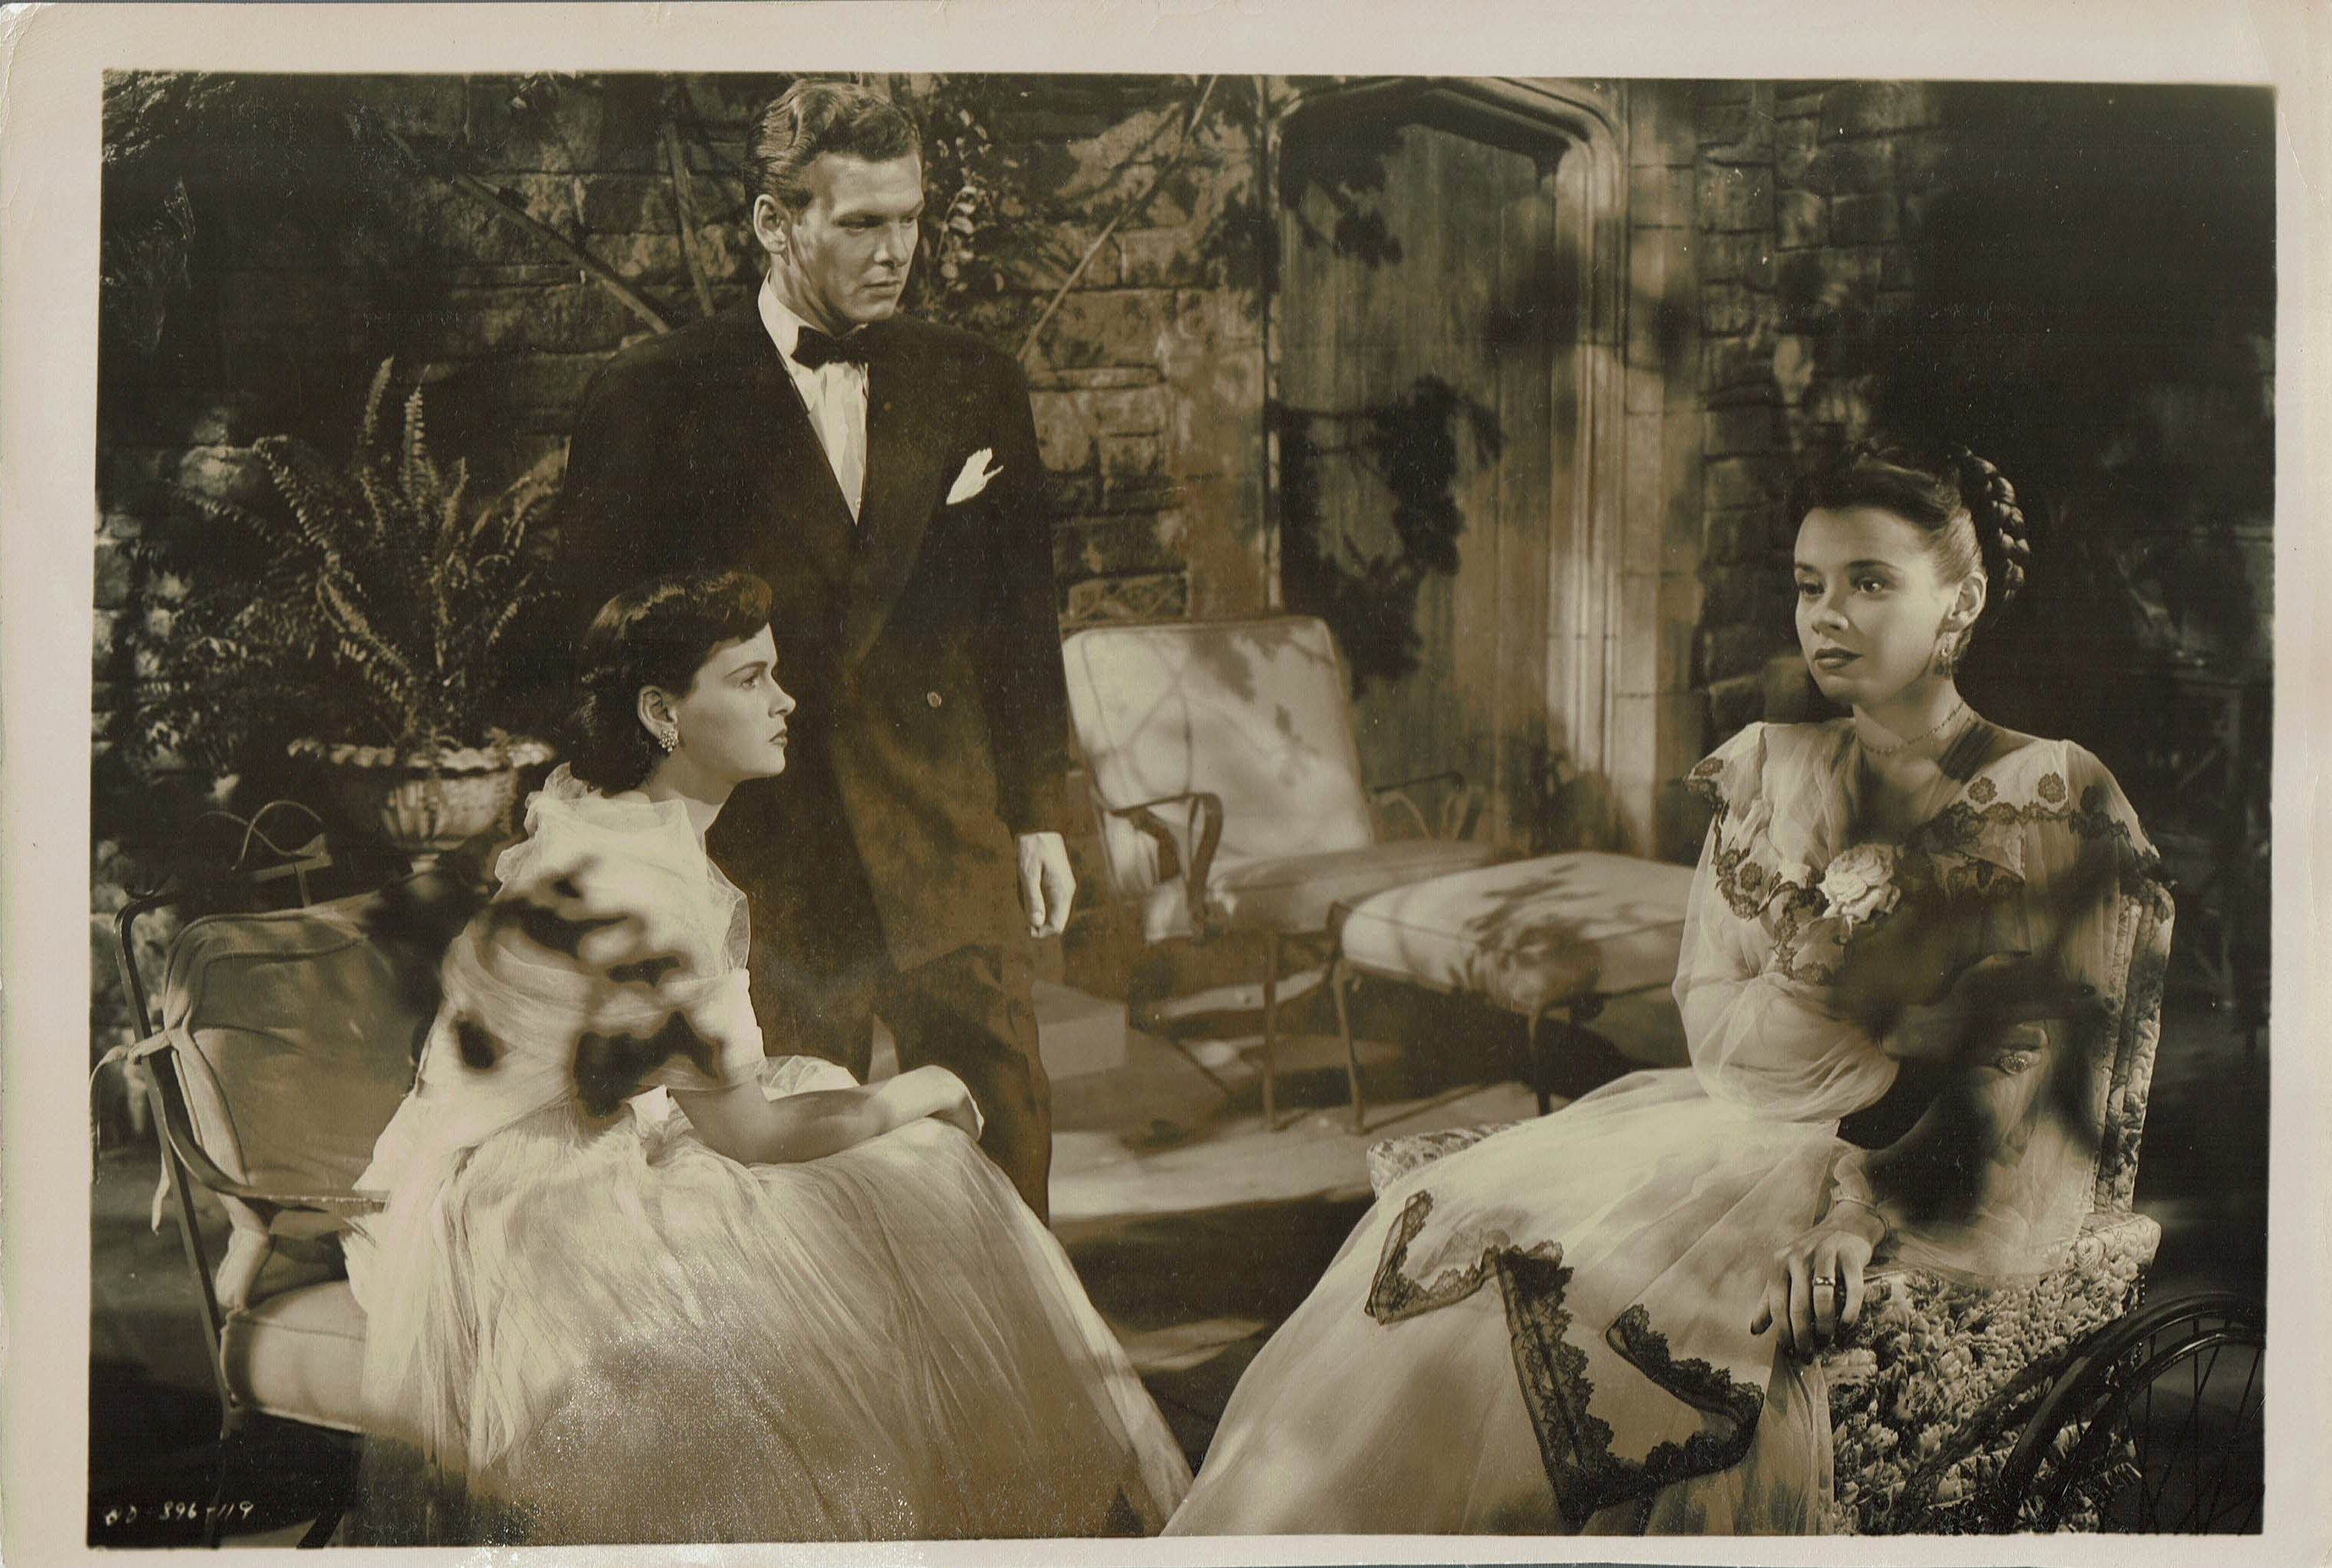 Diana Douglas, Ross Ford, and Susan Peters in The Sign of the Ram (1948)